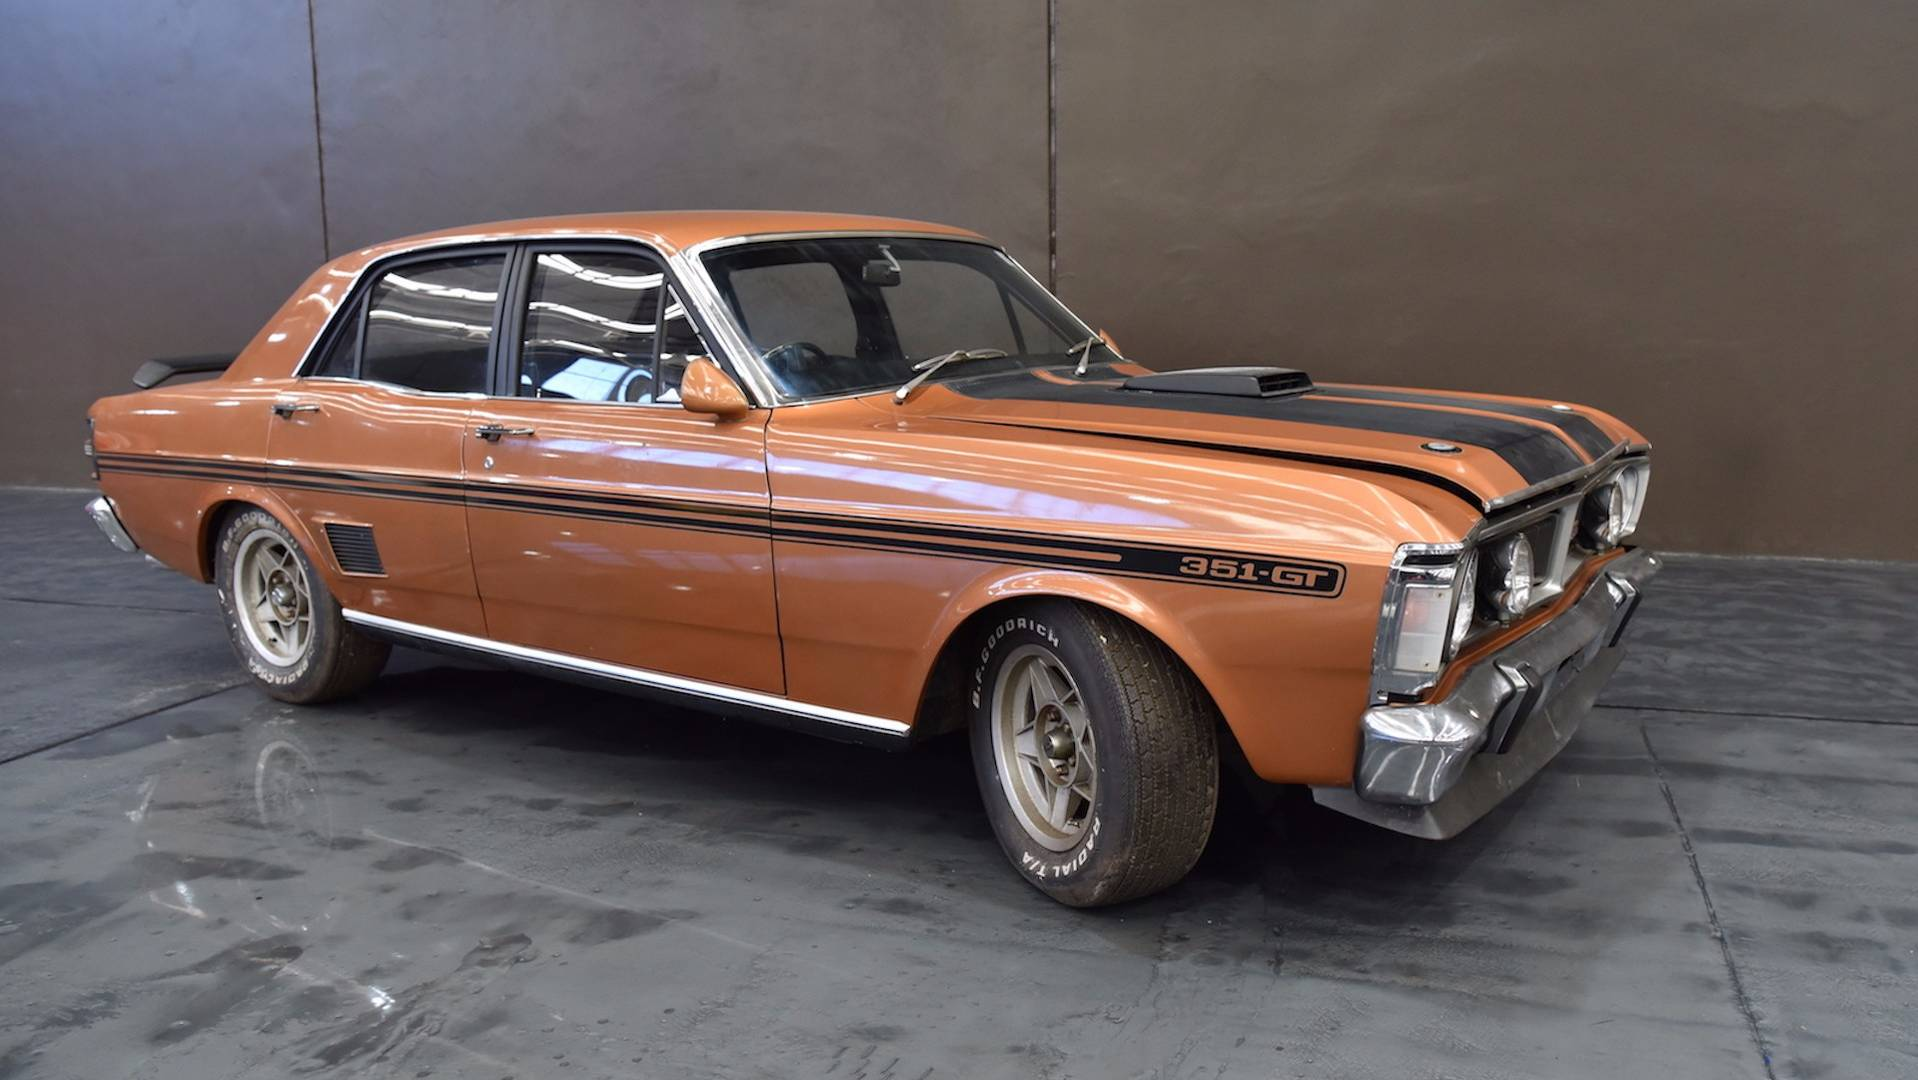 fec7eafc 1971 Ford Falcon GTHO Lost For 30 Years Heading To Auction